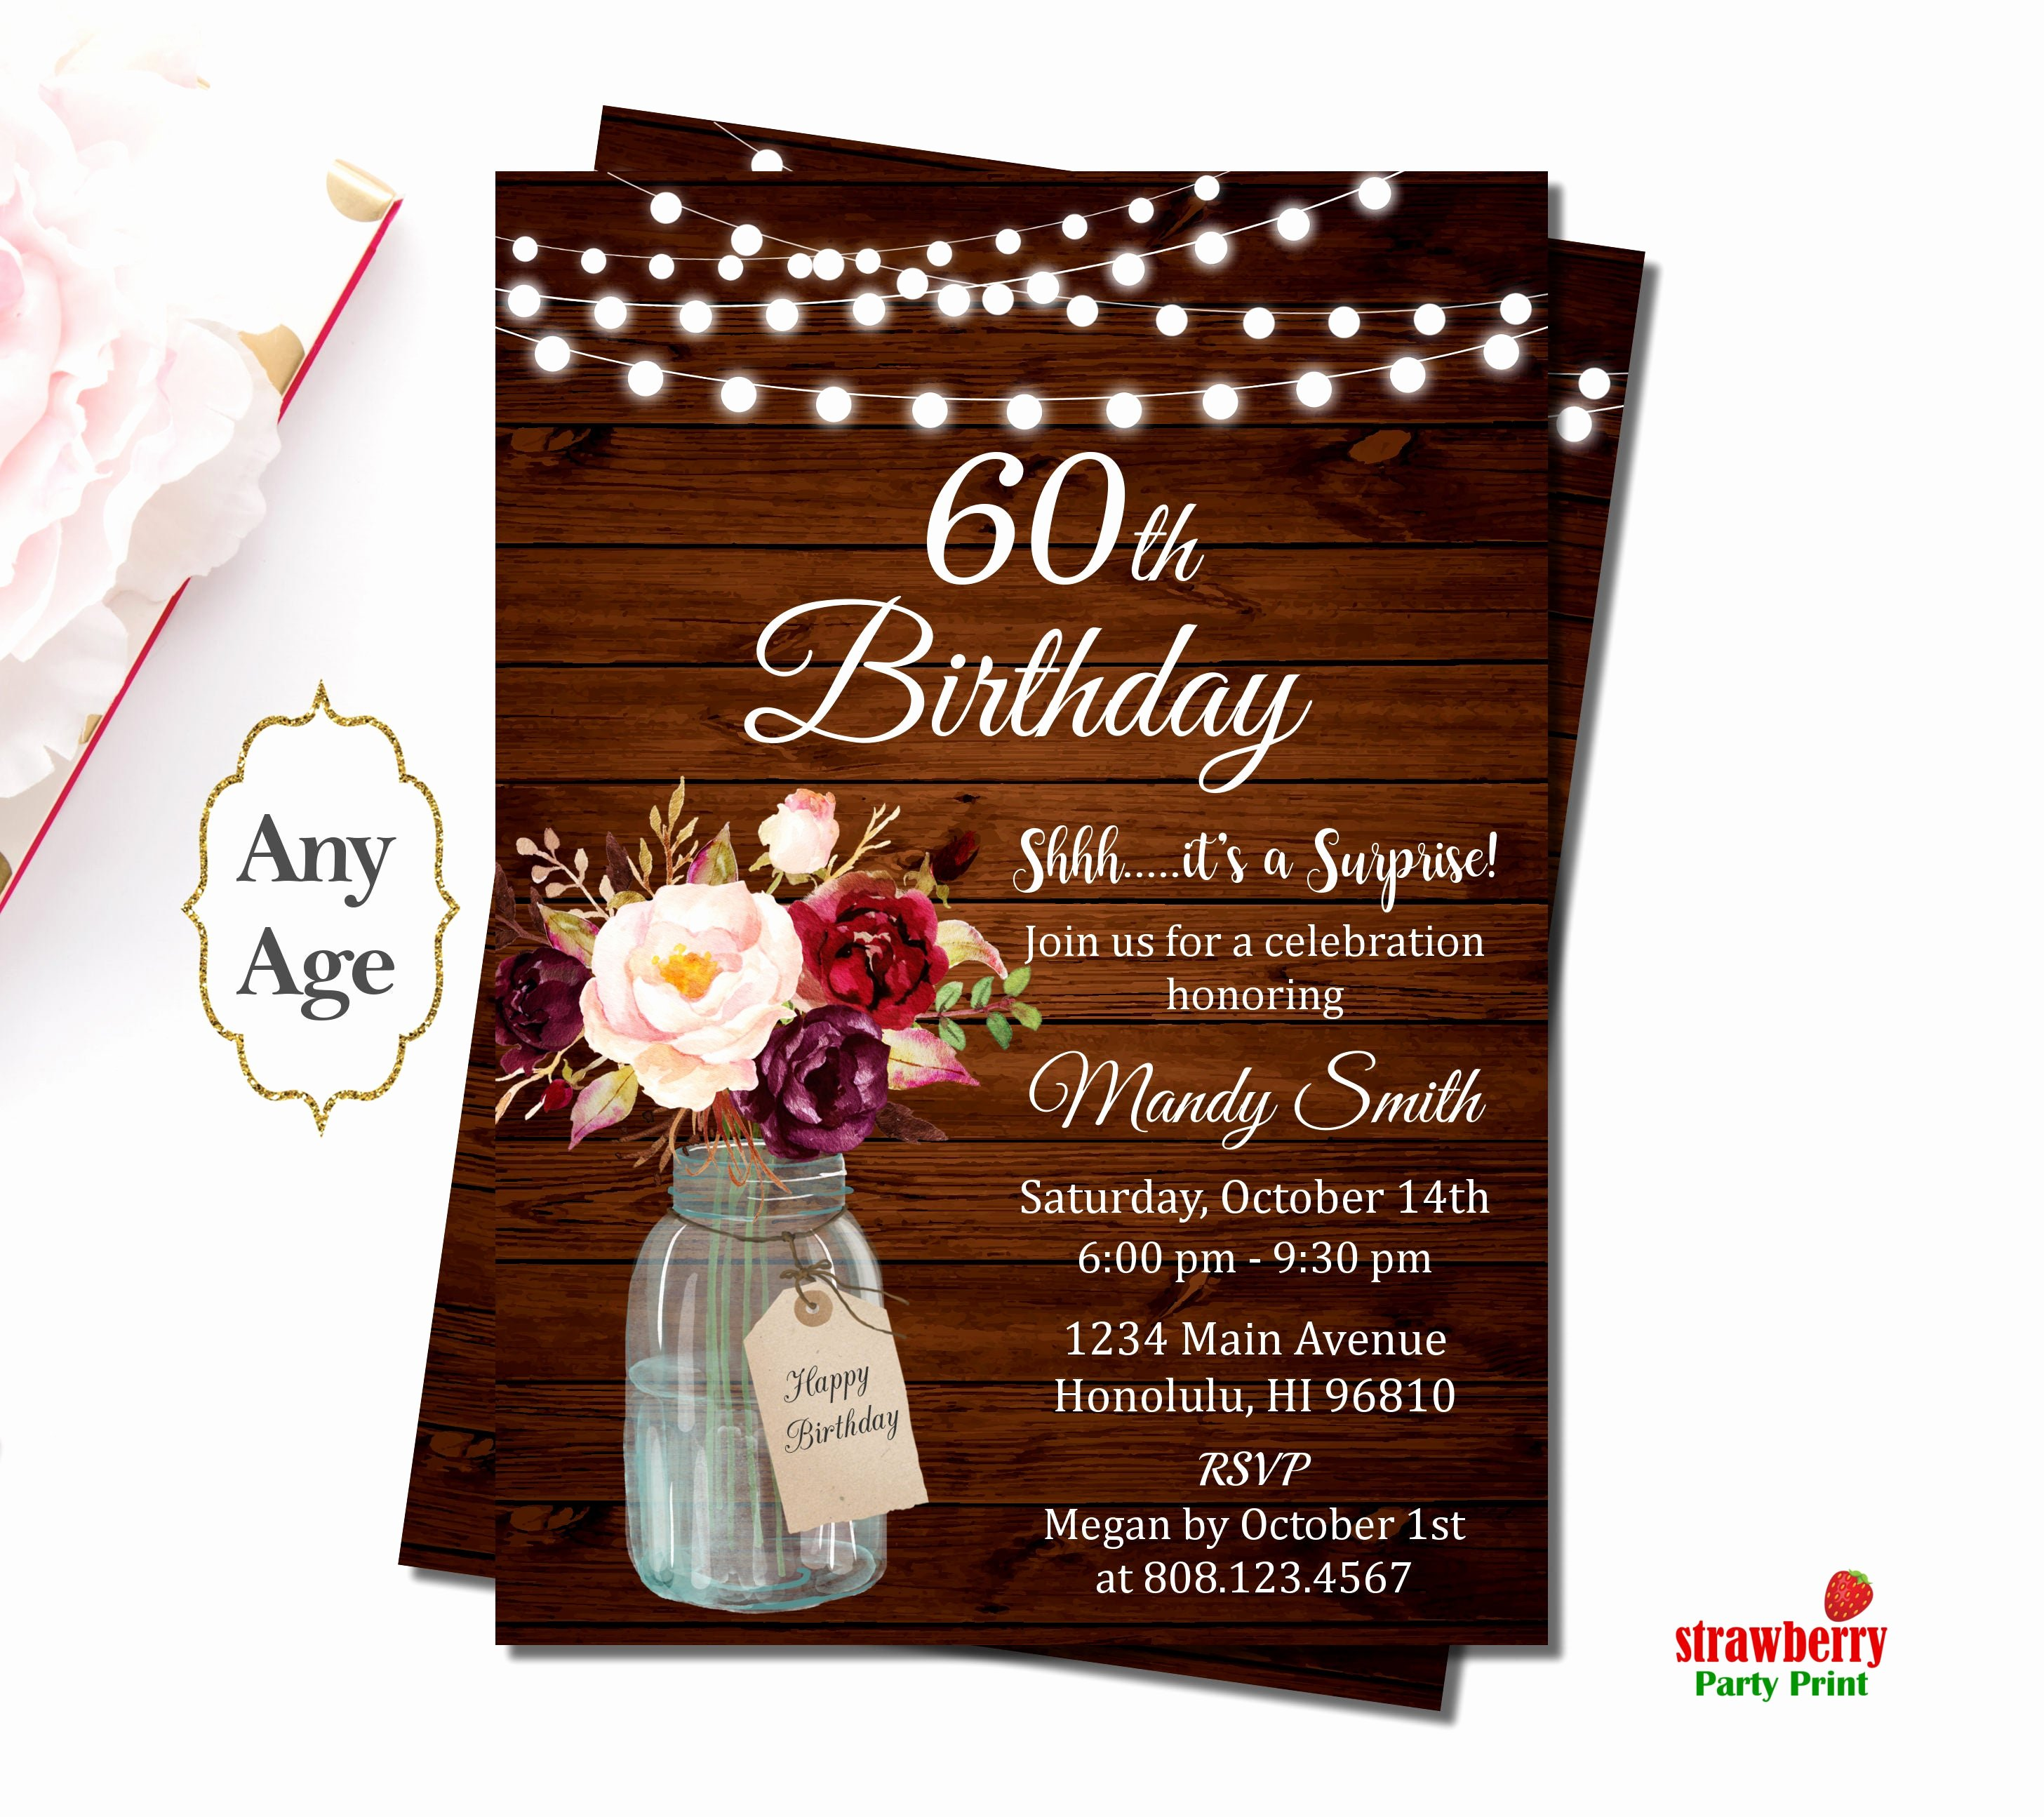 60 Th Birthday Invites Beautiful 60th Birthday Invitations for Women Surprise 60th Birthday